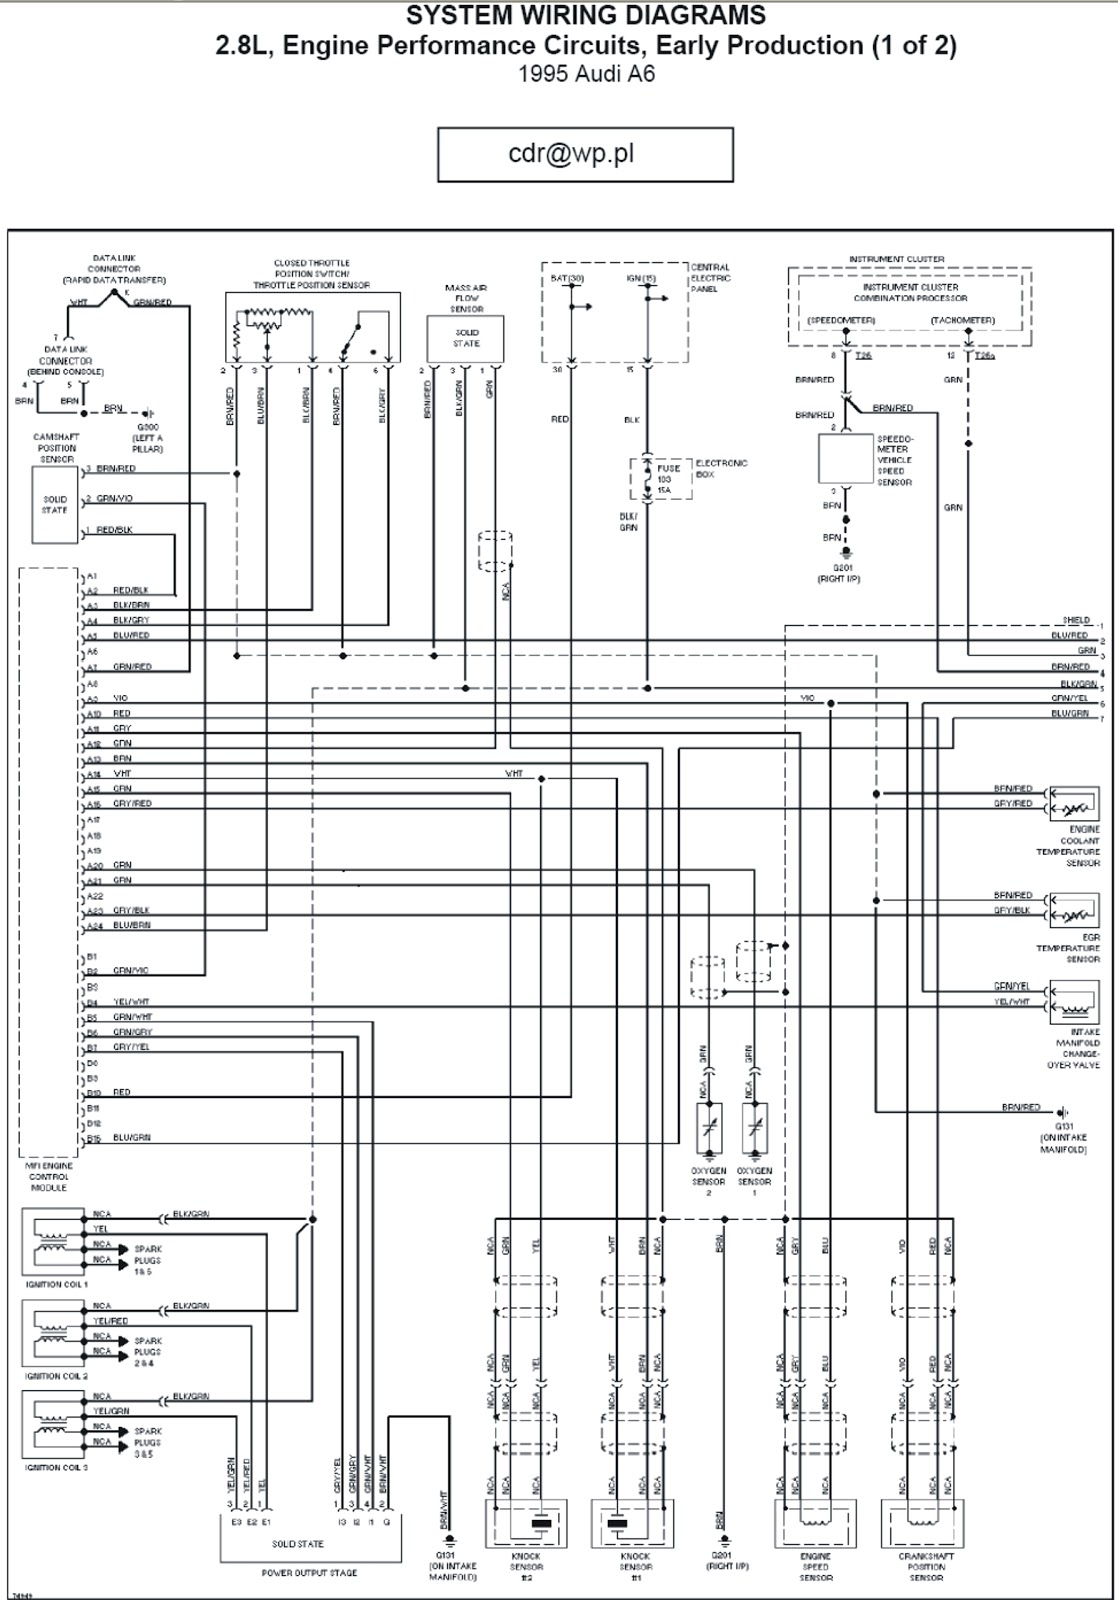 Audi A4 Engine Diagram Wiring Library S6 1996 A6 Performance Circuits Diagrams Parts 2003